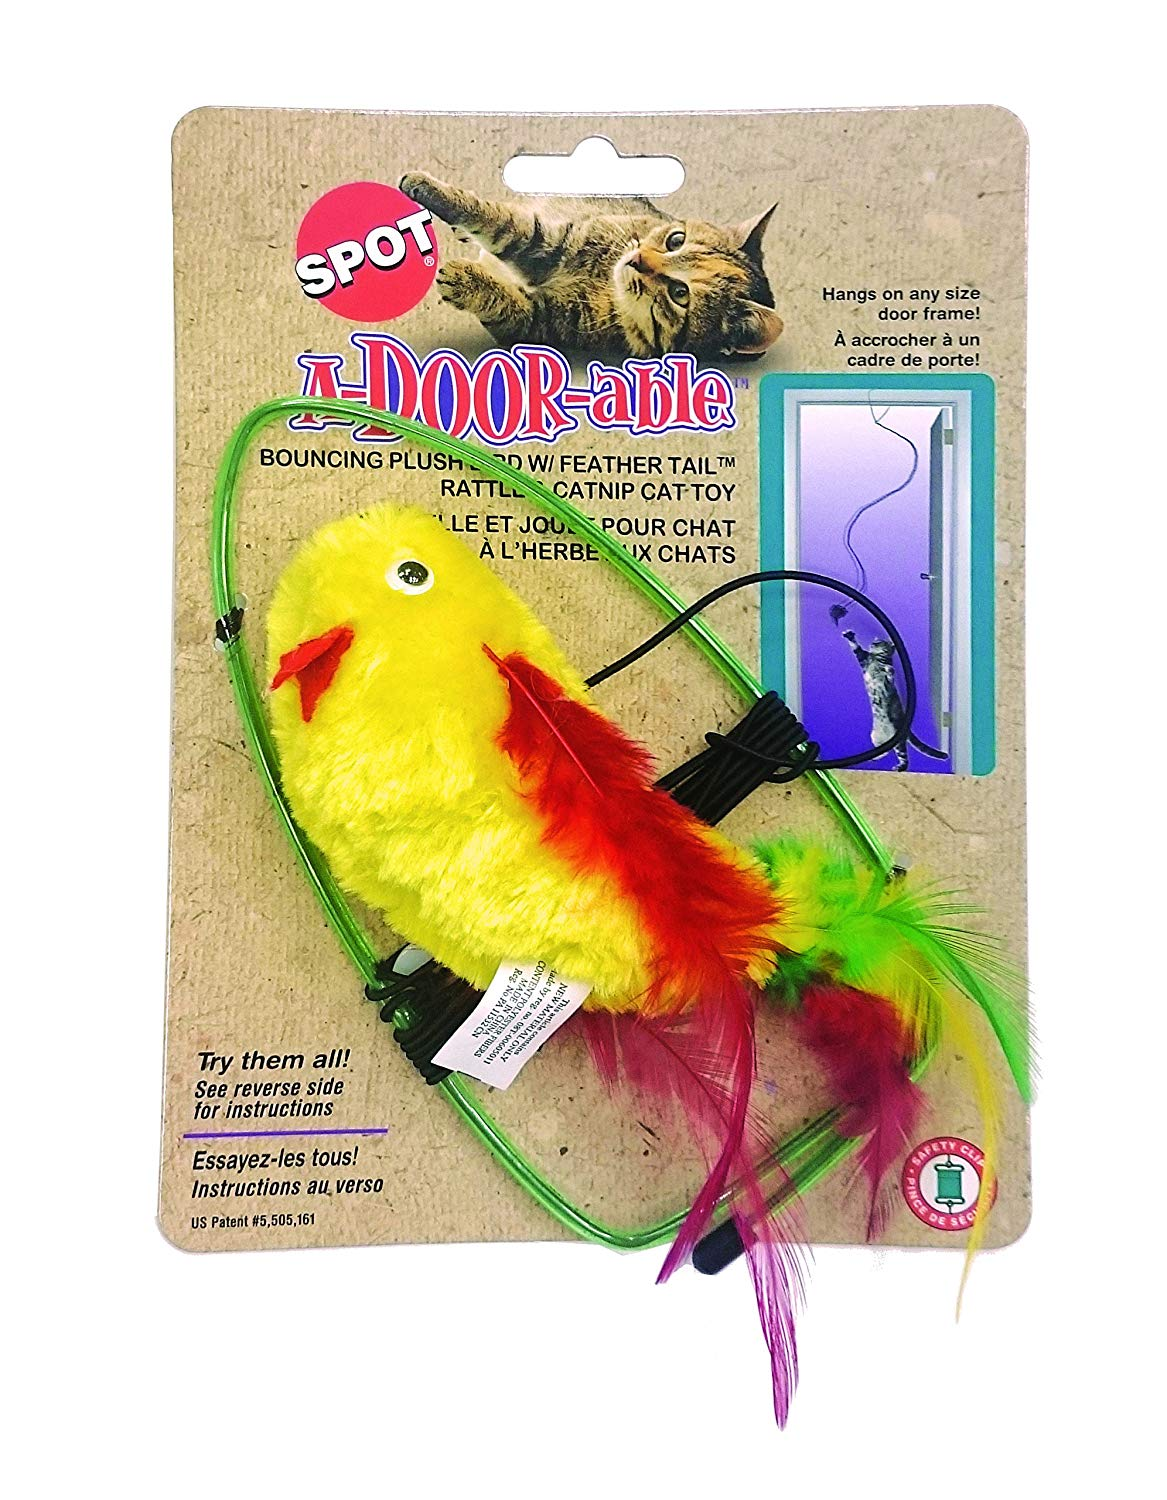 Ethical Pet Spot A-Door-Able Bouncing Bird with Feather Tail Cat Toy, Color Varies